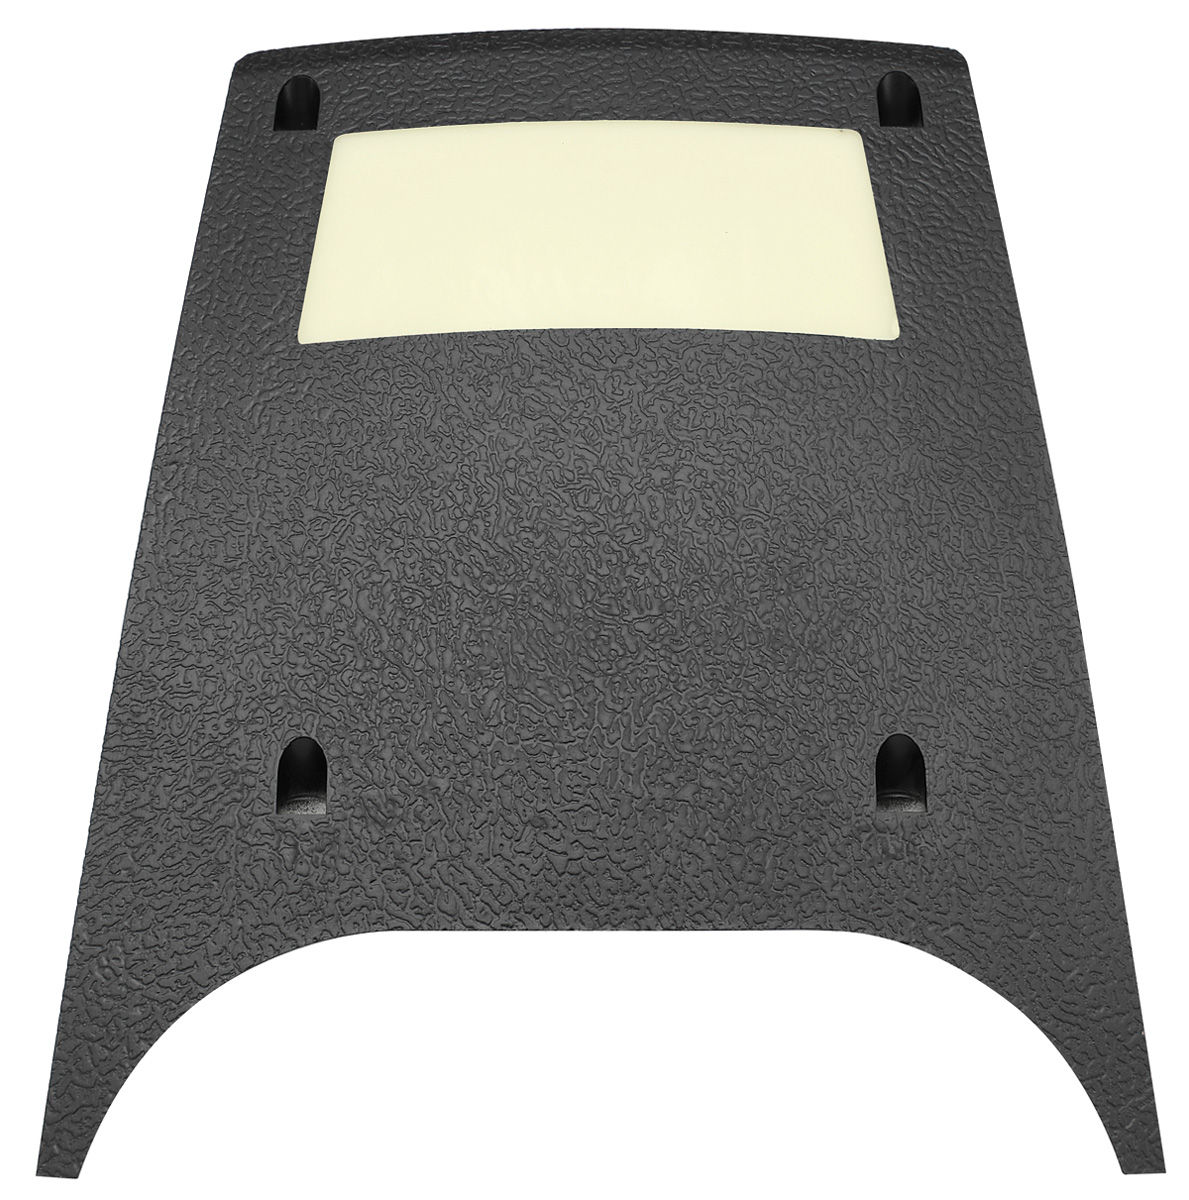 Photo of Console Light Panel Assembly, Rear